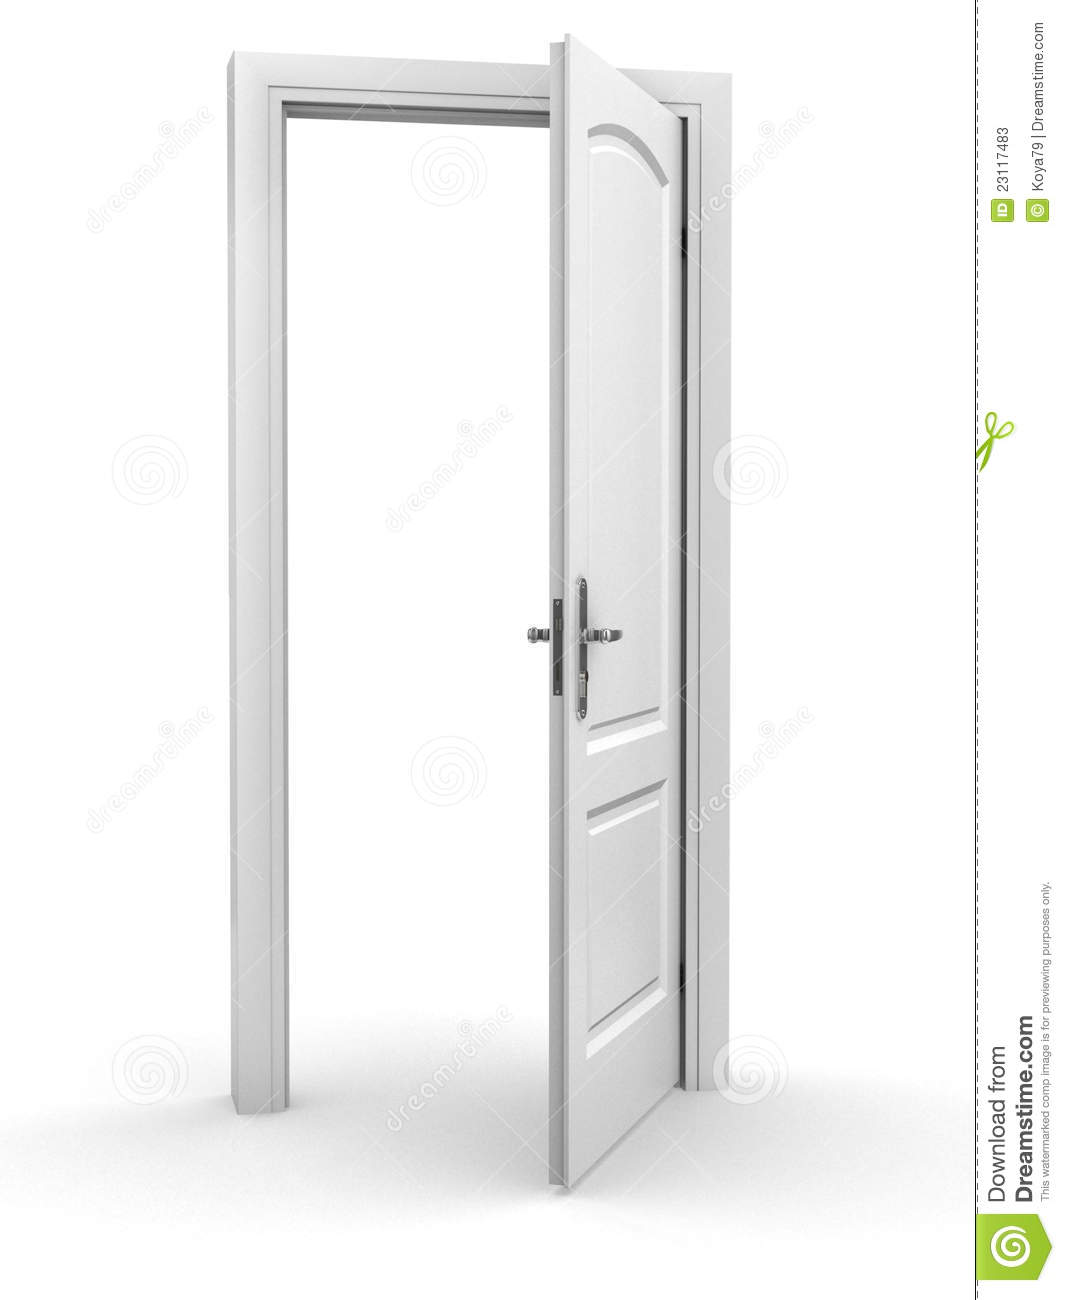 Open Door Stock Photos - Image: 23117483